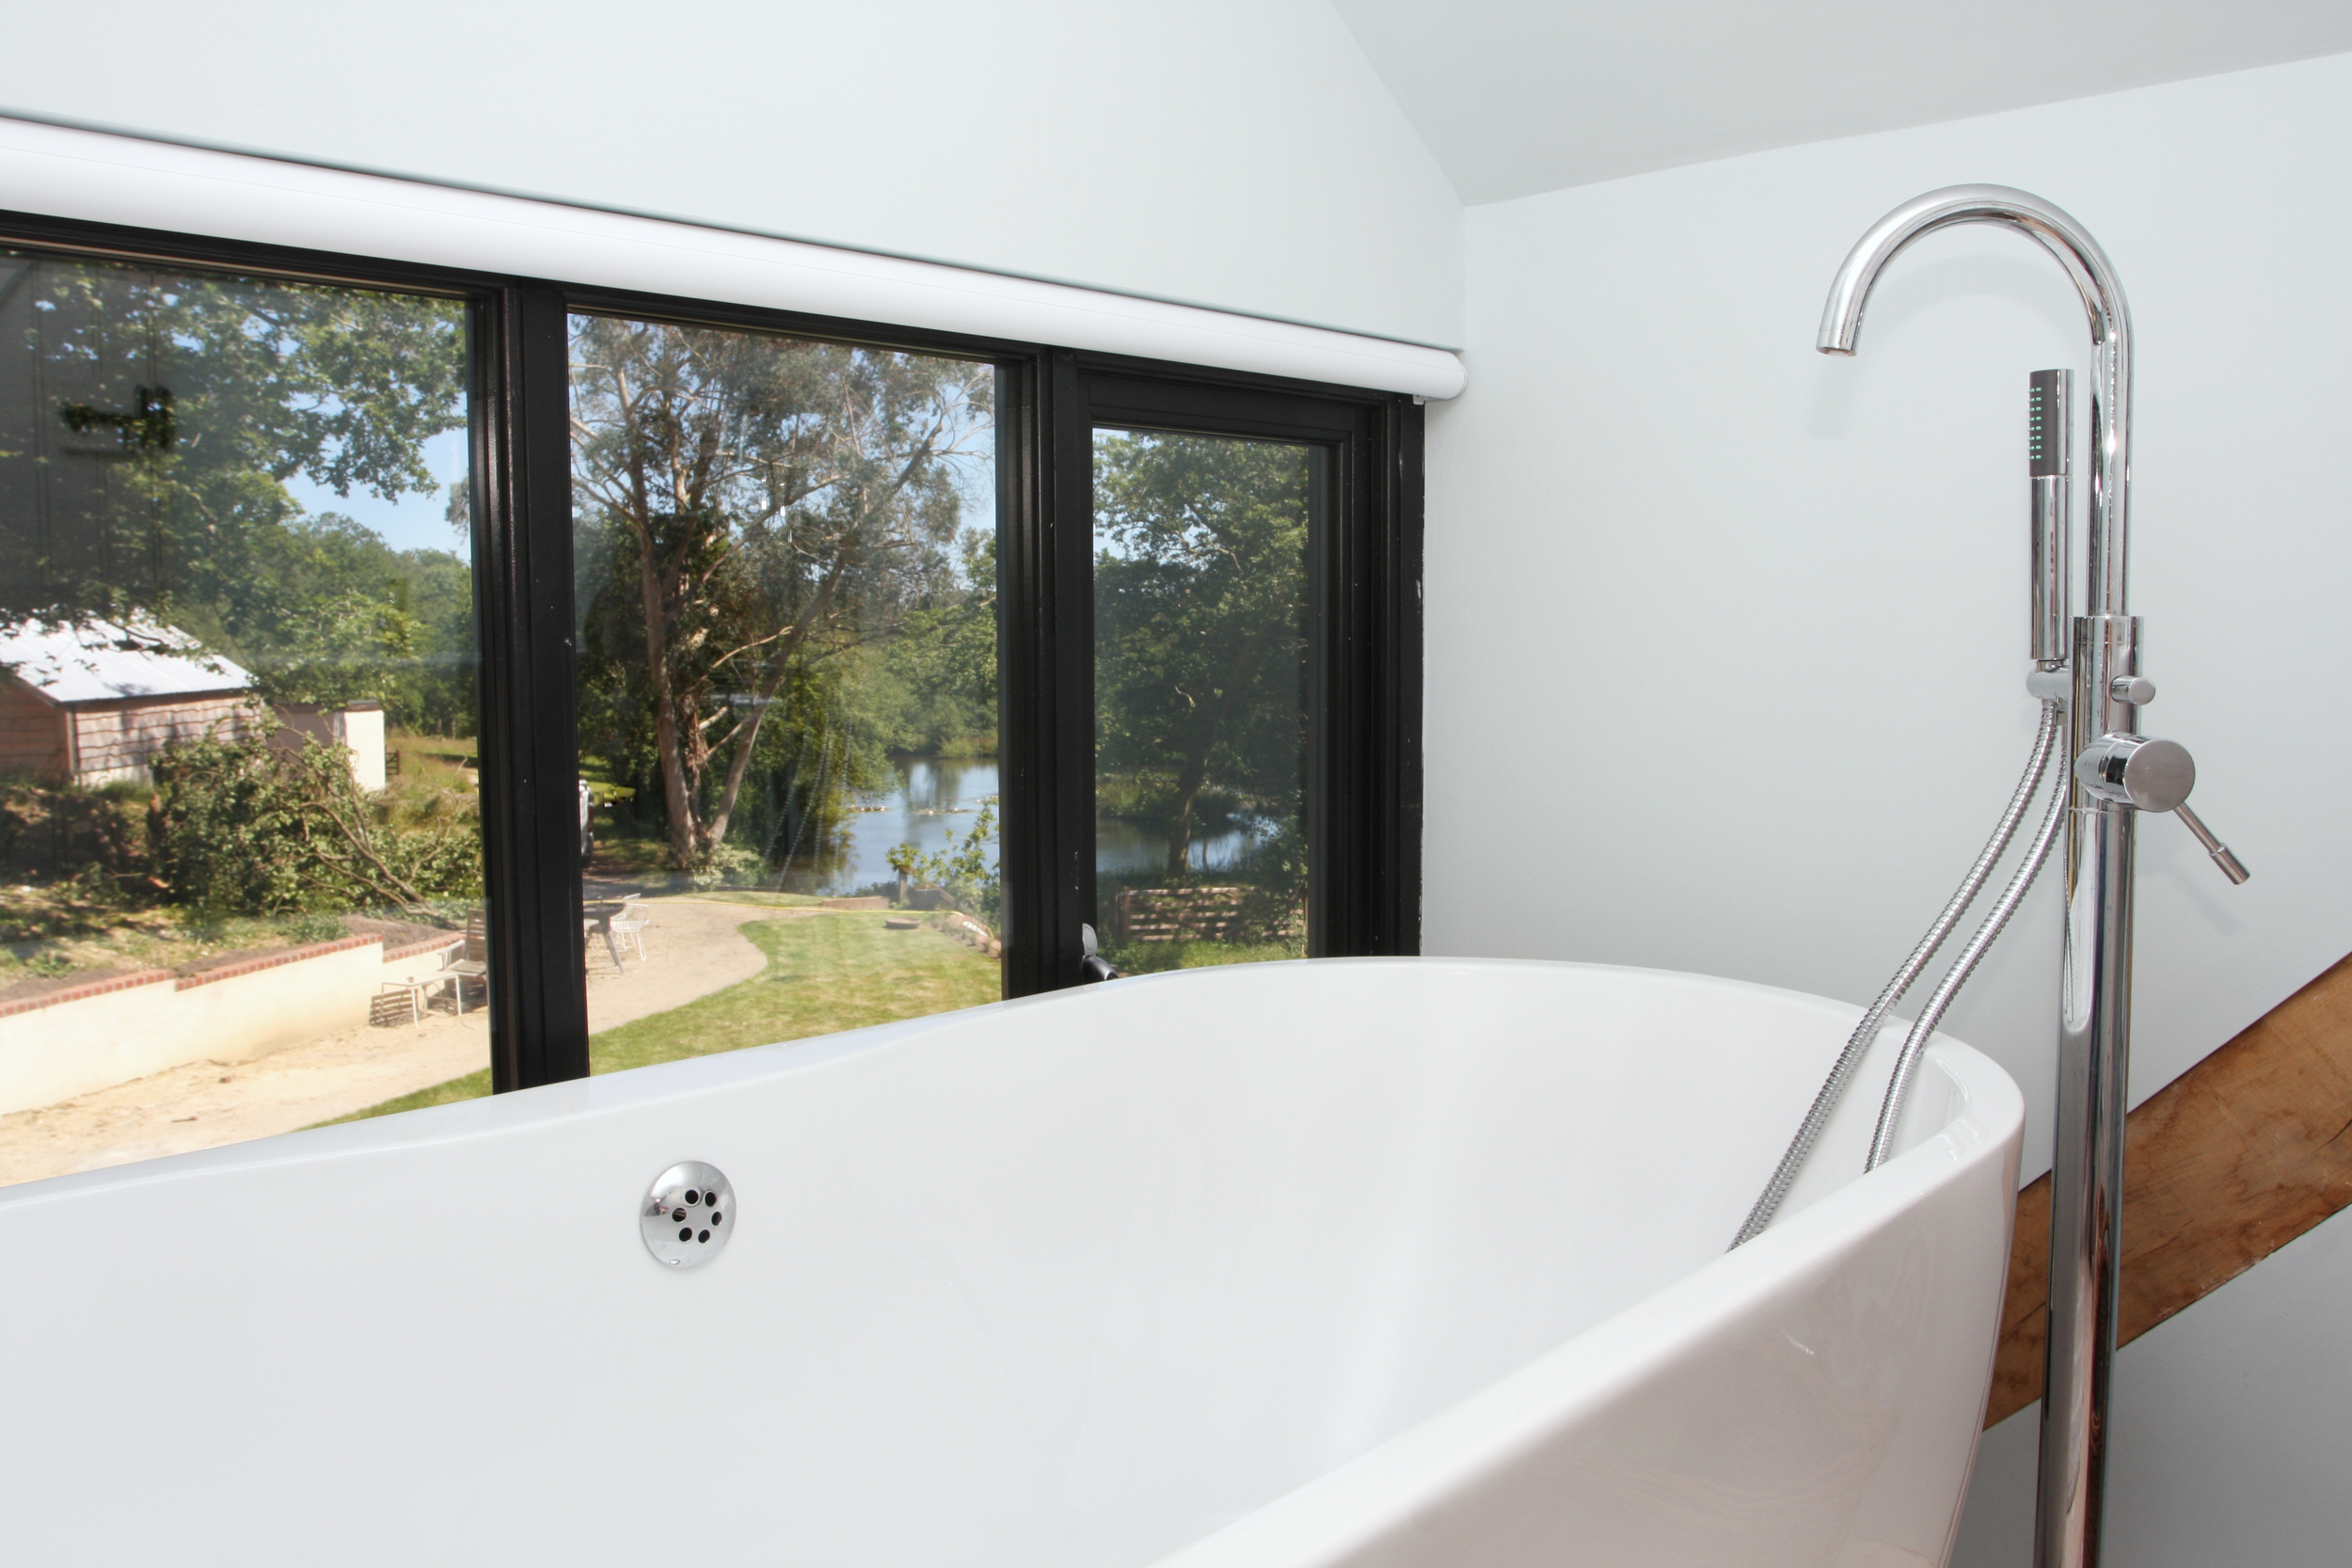 Upstairs bathroom with view towards the lake.